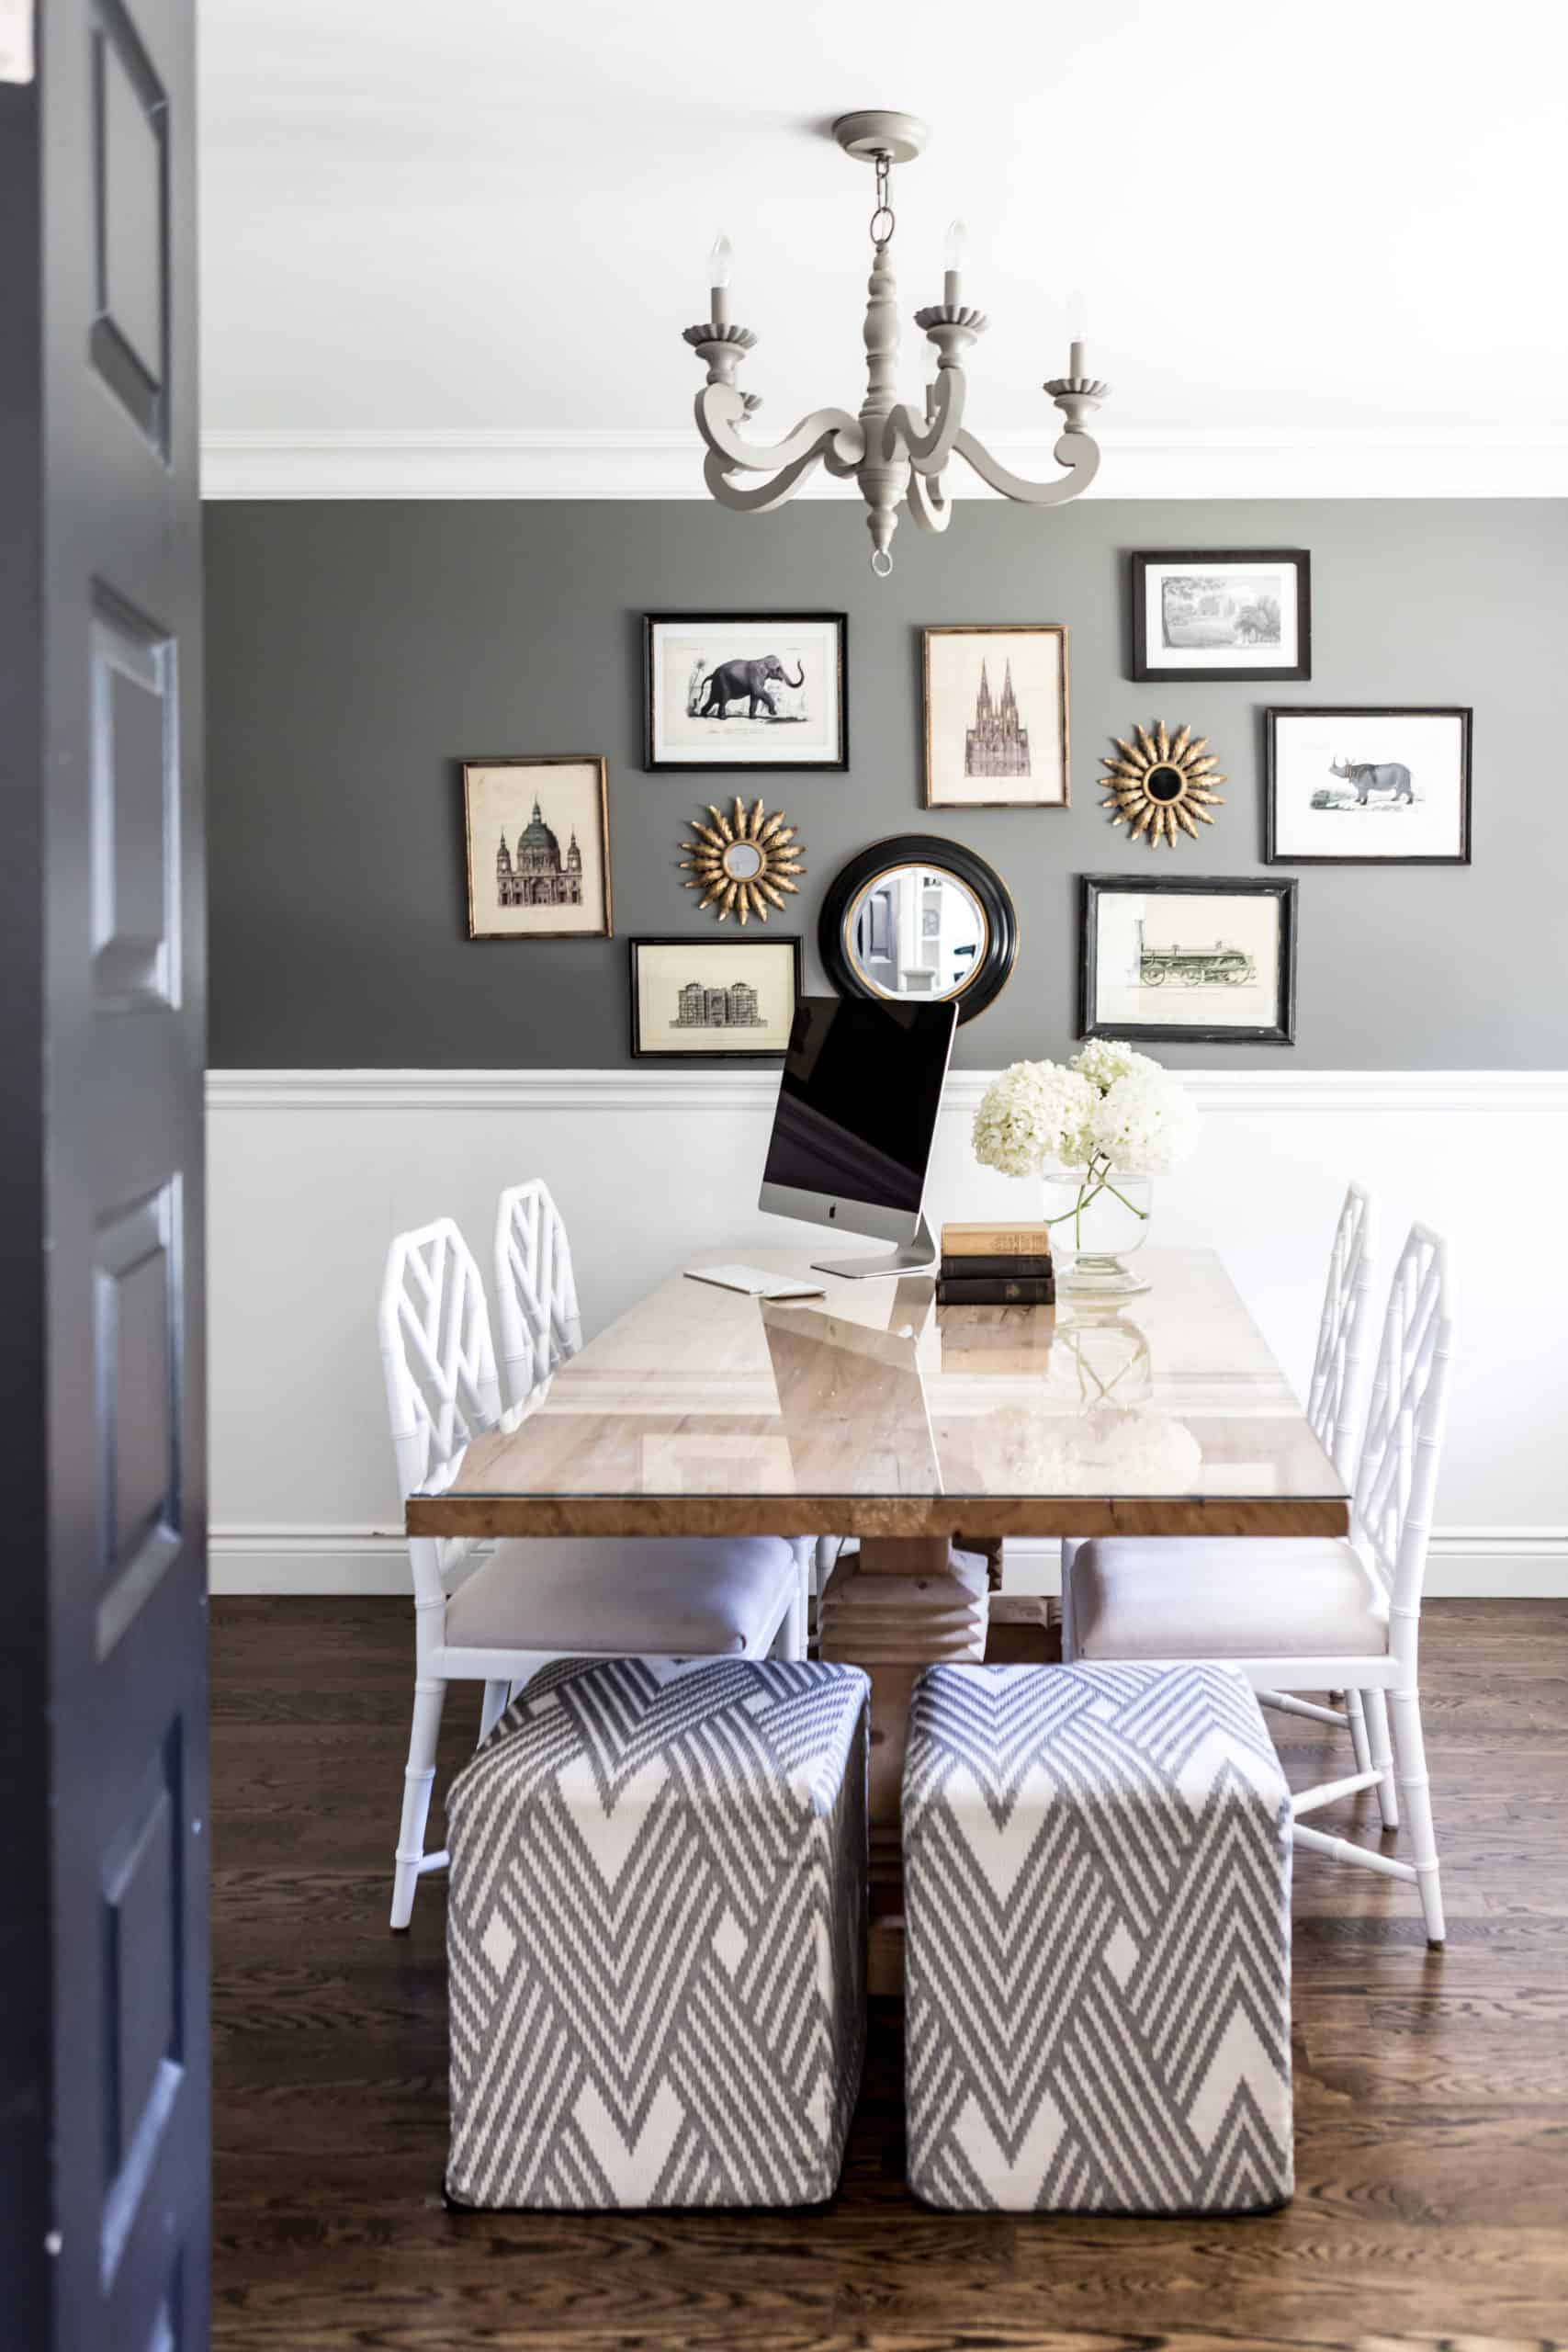 Dining room with white chair at the table